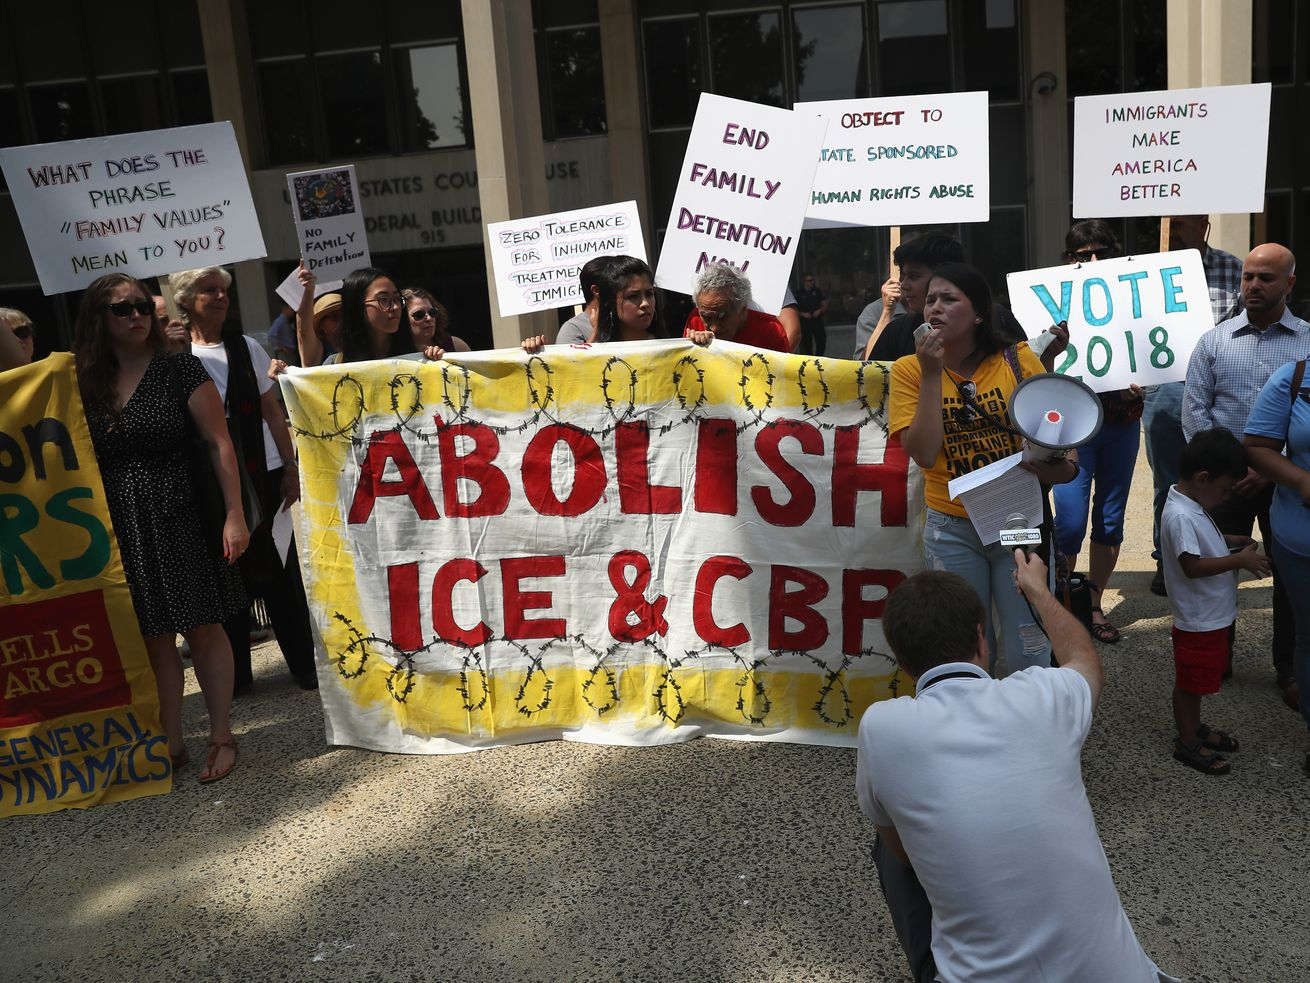 Protesters rally against family separation at a US federal court in Connecticut.